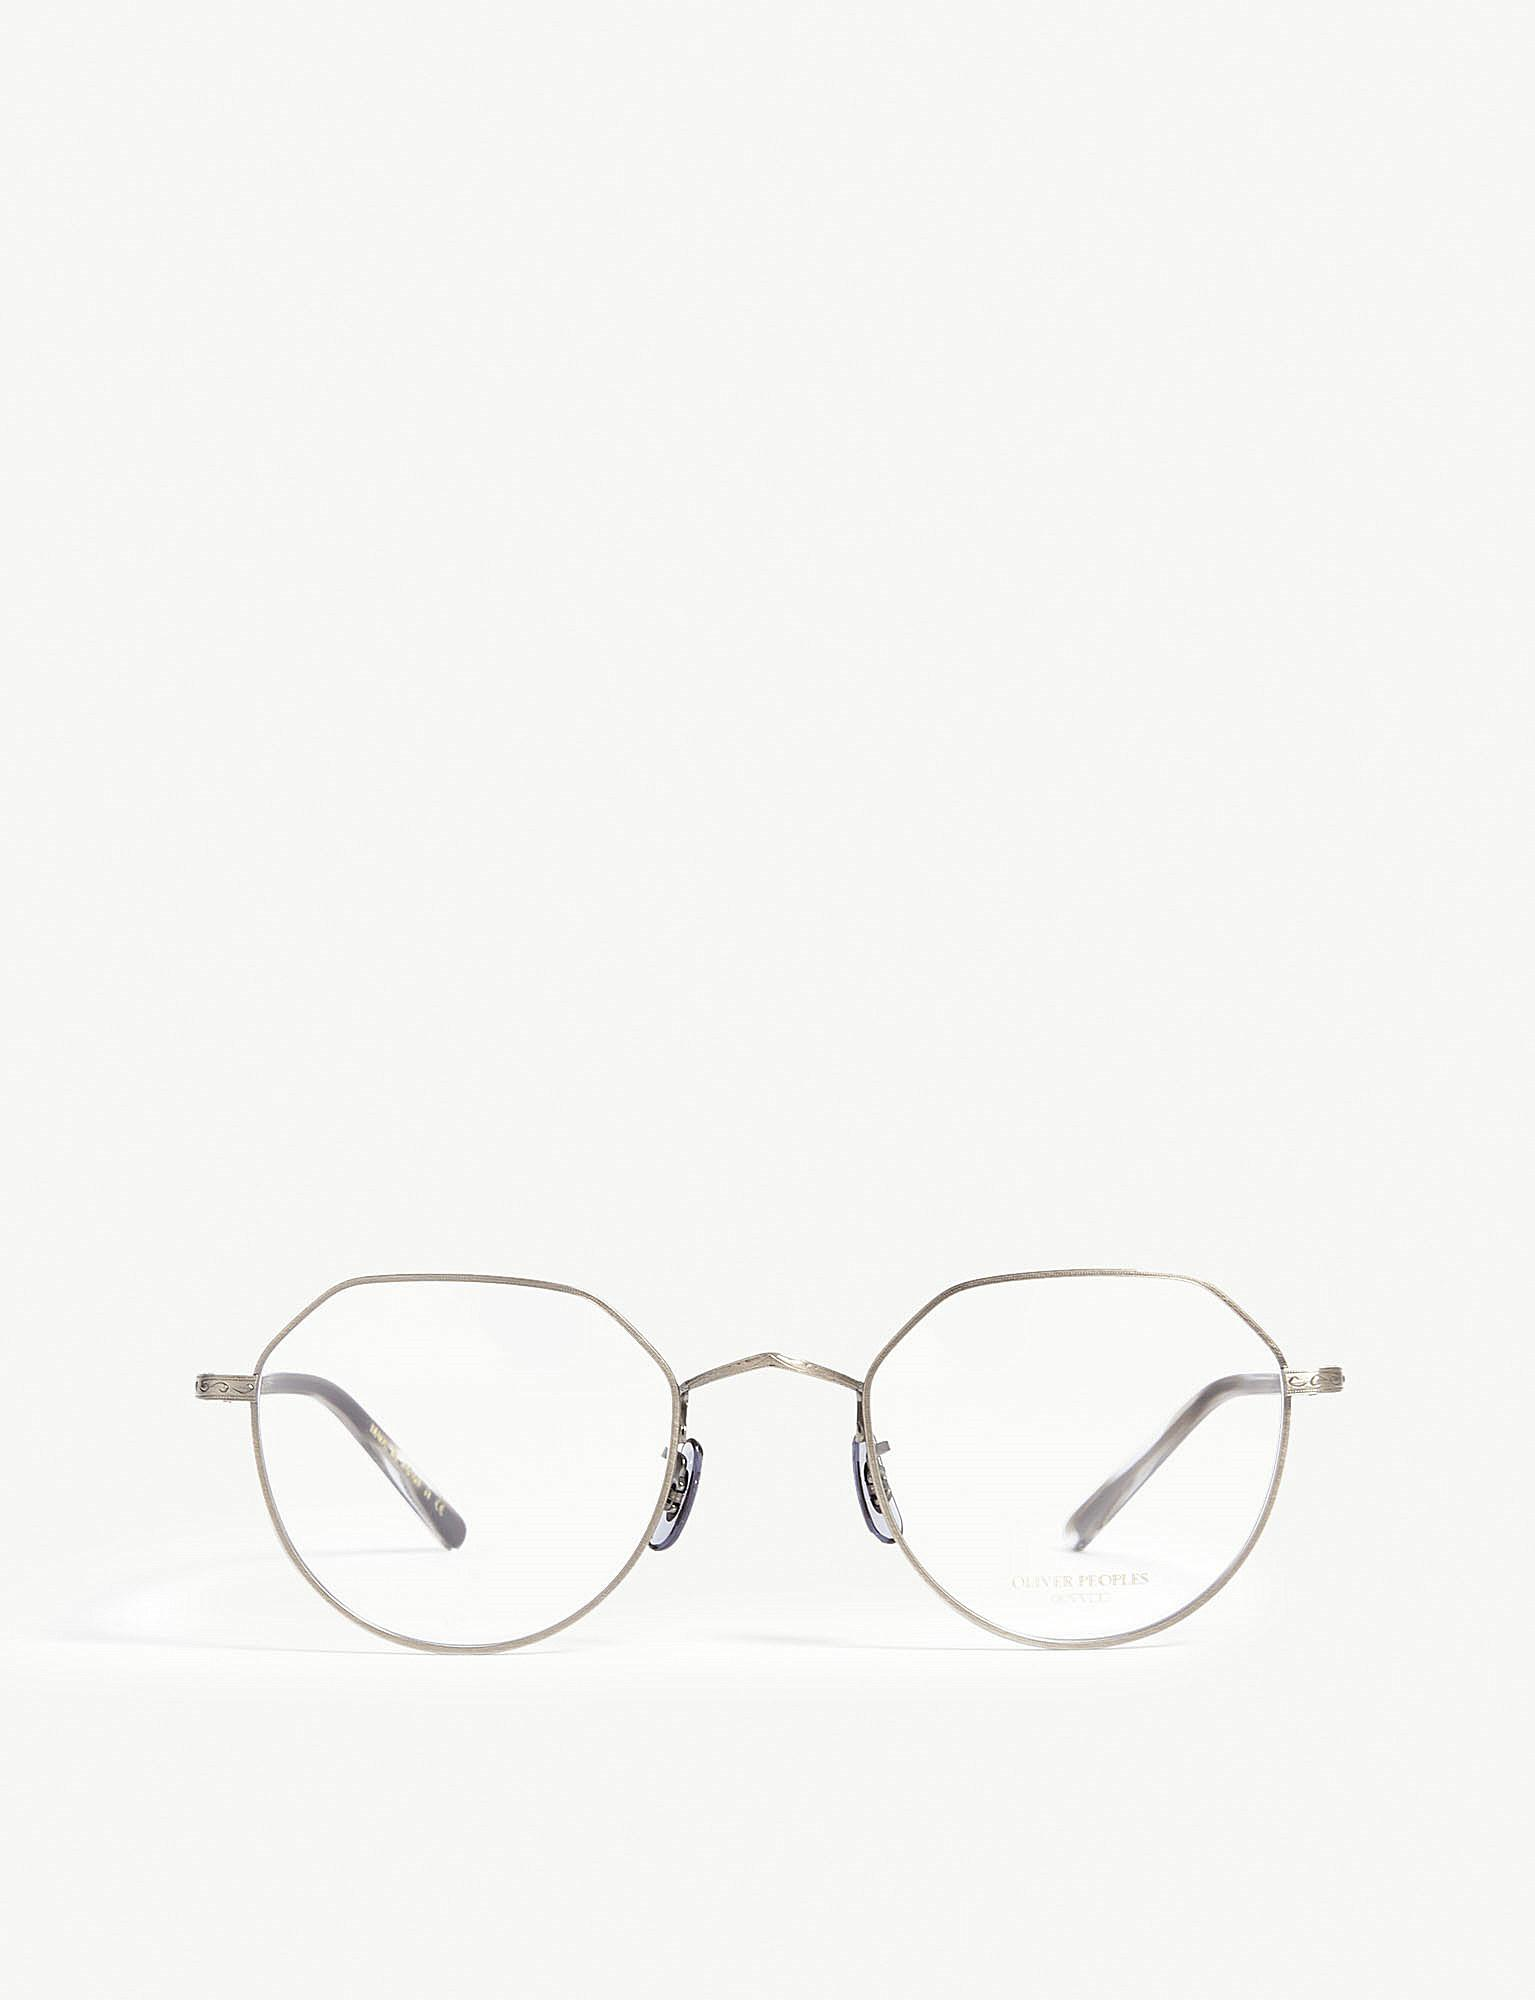 Lyst - Oliver Peoples Round-frame Optical Glasses in Gray